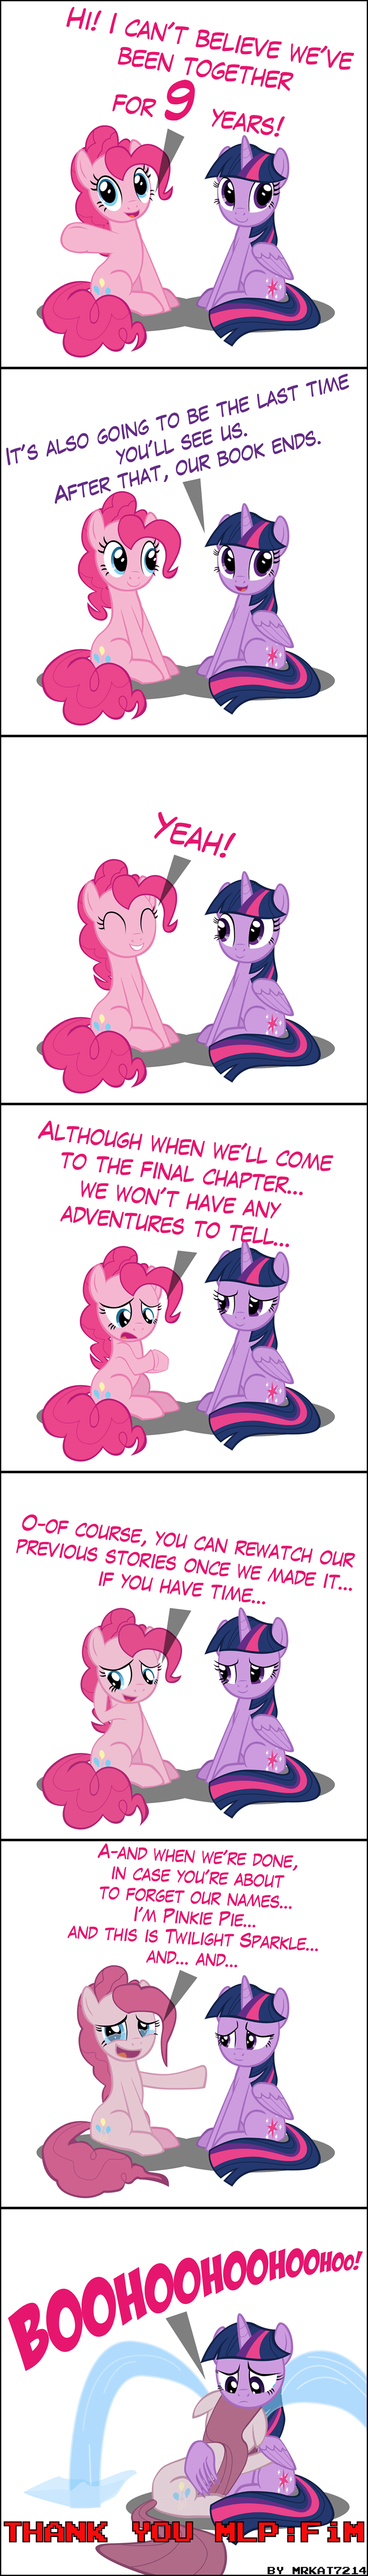 pinkamena diane pie mrkat7214 twilight sparkle pinkie pie comic - 9272821248